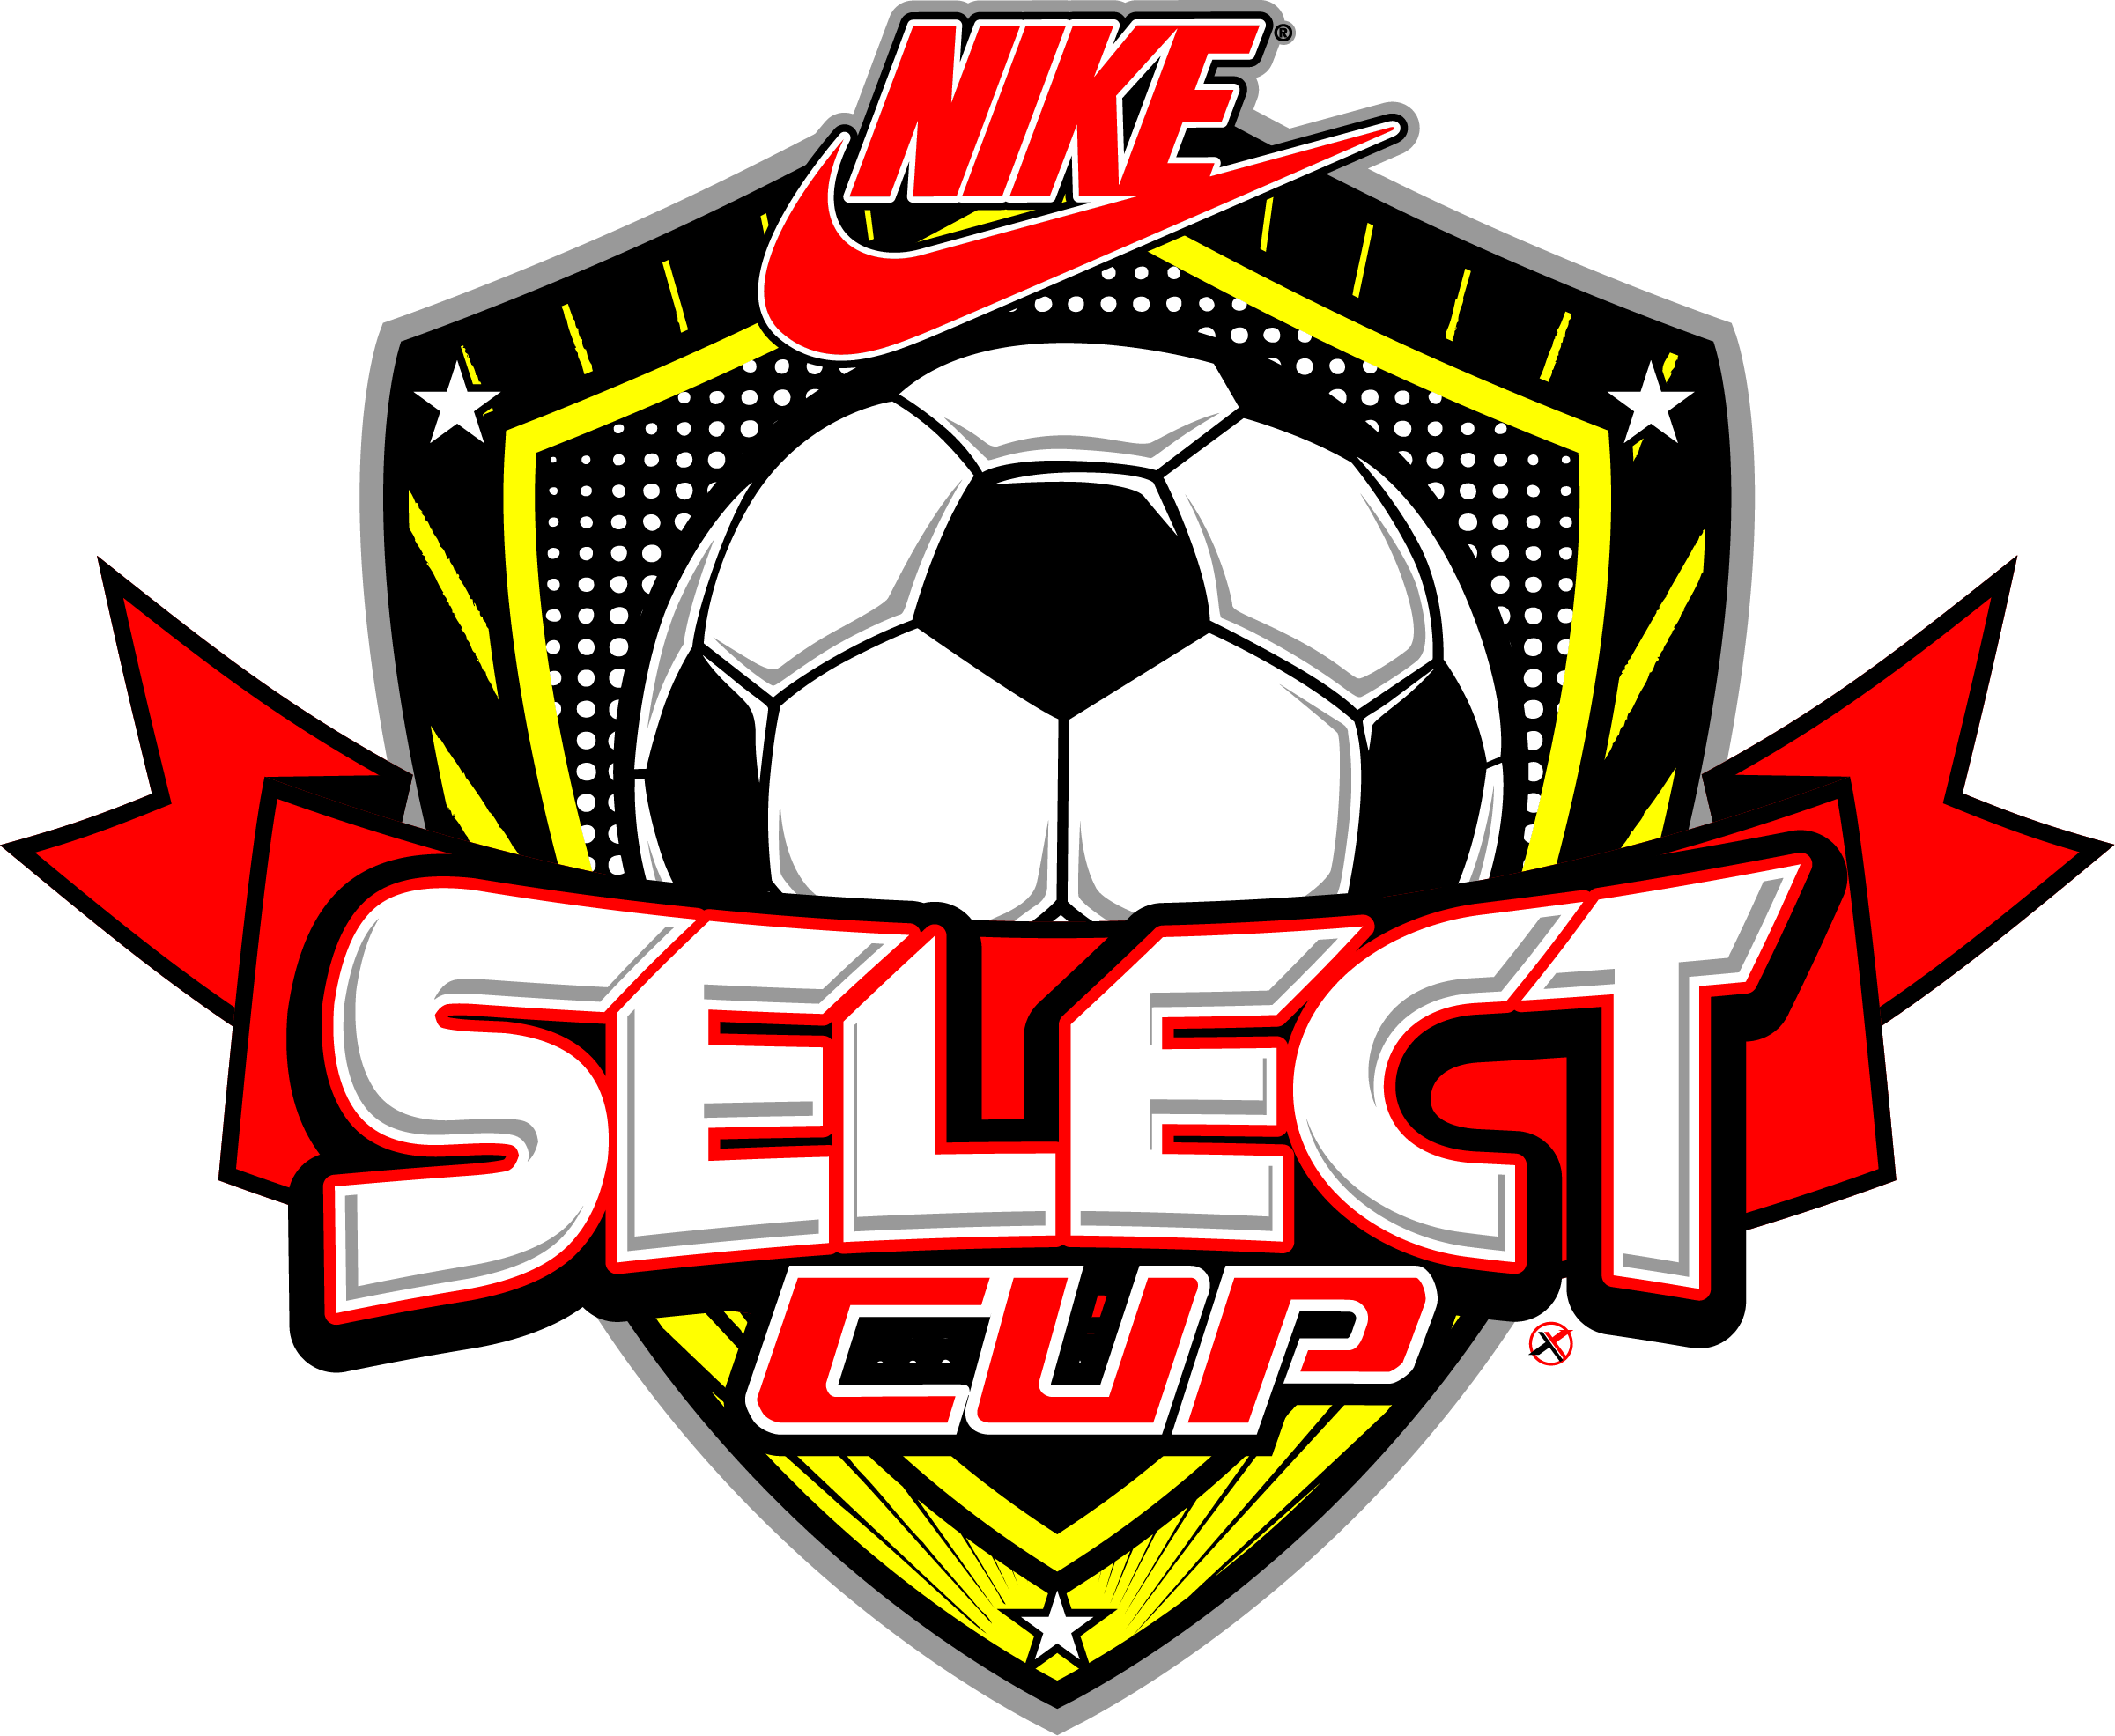 7b90f675d Welcome to the sixth year of Concorde Fire's Nike Select Cup! Concorde Fire  Soccer Club of Metro Atlanta is pleased to invite your team to the  beautiful ...